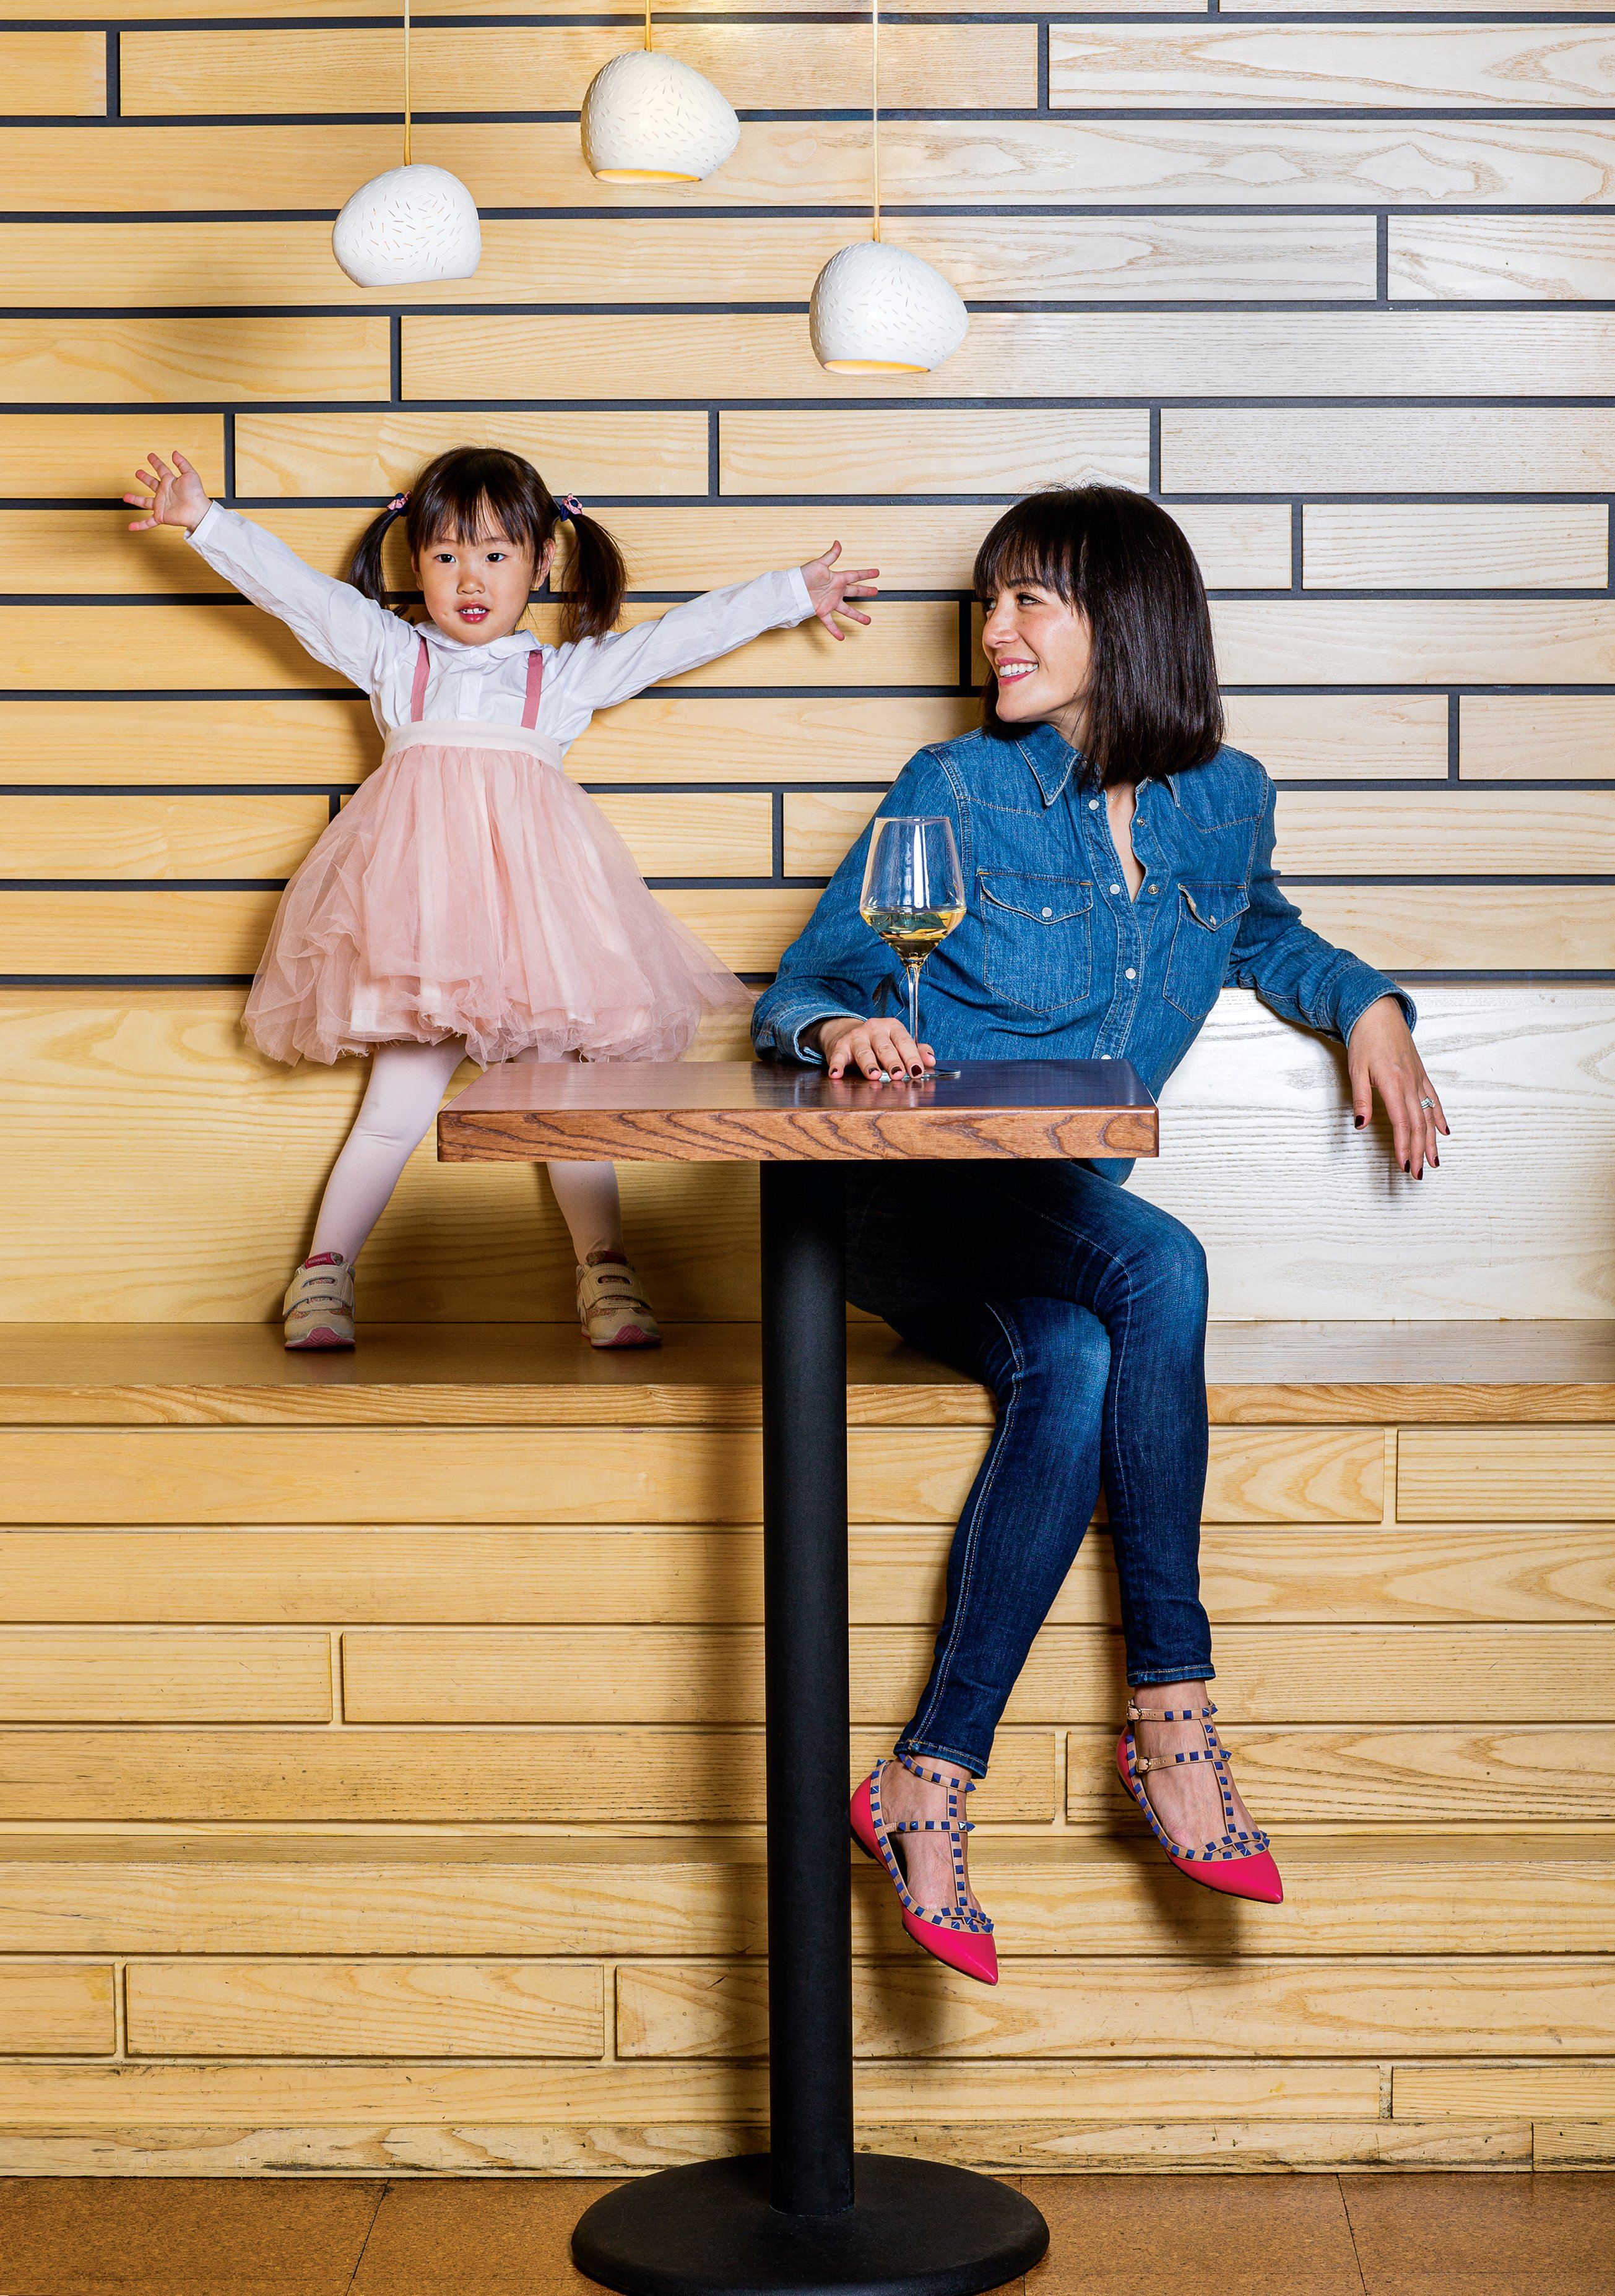 Flight Wine Bar was funded in large part by Patty Sung and her husband. The family is a fixture there, three-year-old daughter included. Photographed at Flight Wine Bar.